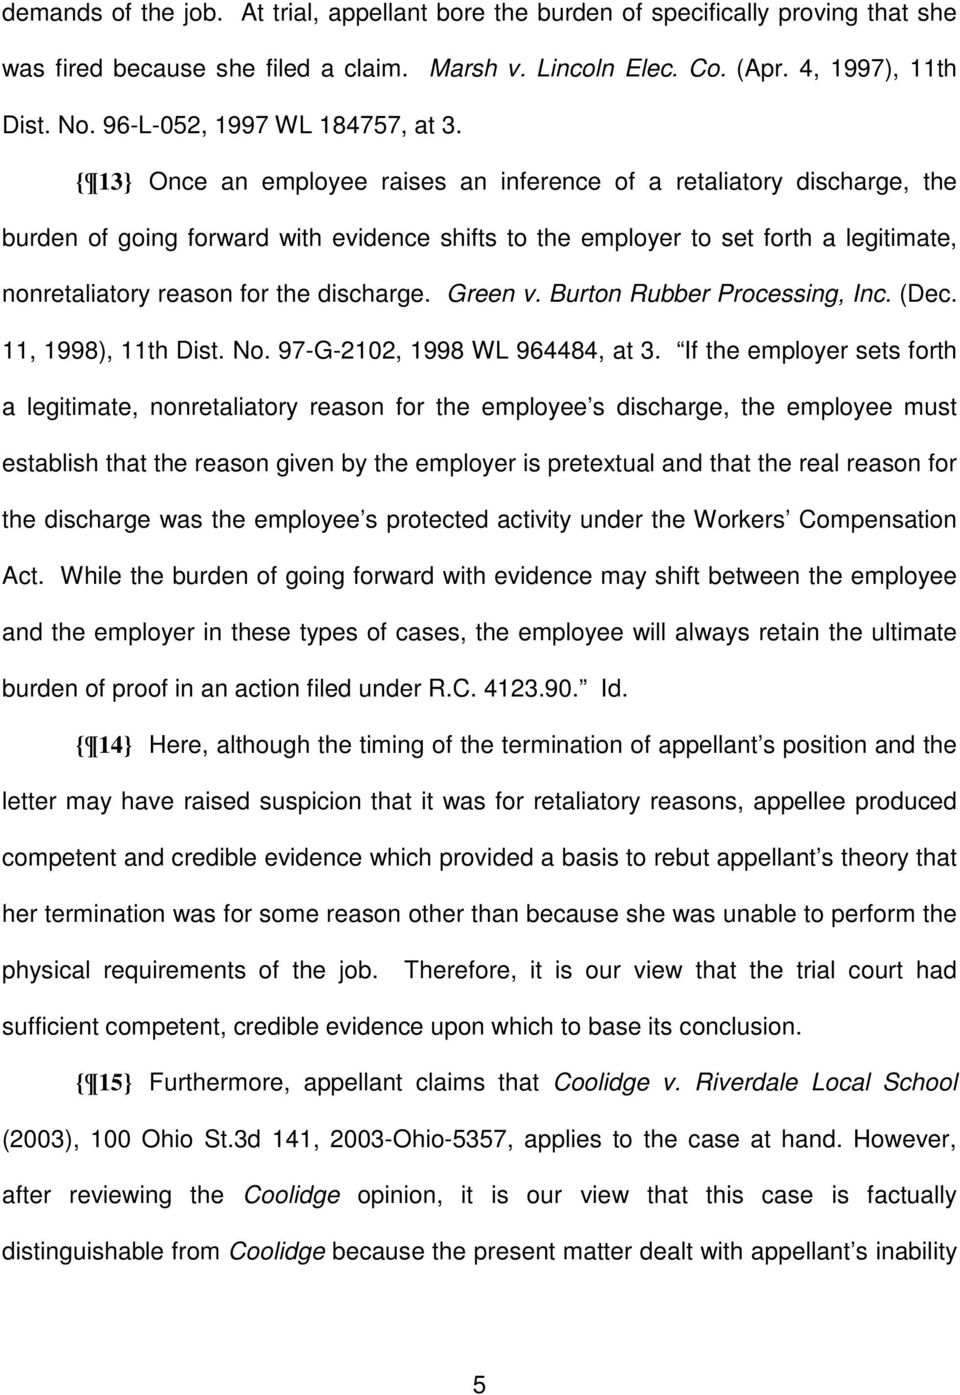 { 13} Once an employee raises an inference of a retaliatory discharge, the burden of going forward with evidence shifts to the employer to set forth a legitimate, nonretaliatory reason for the